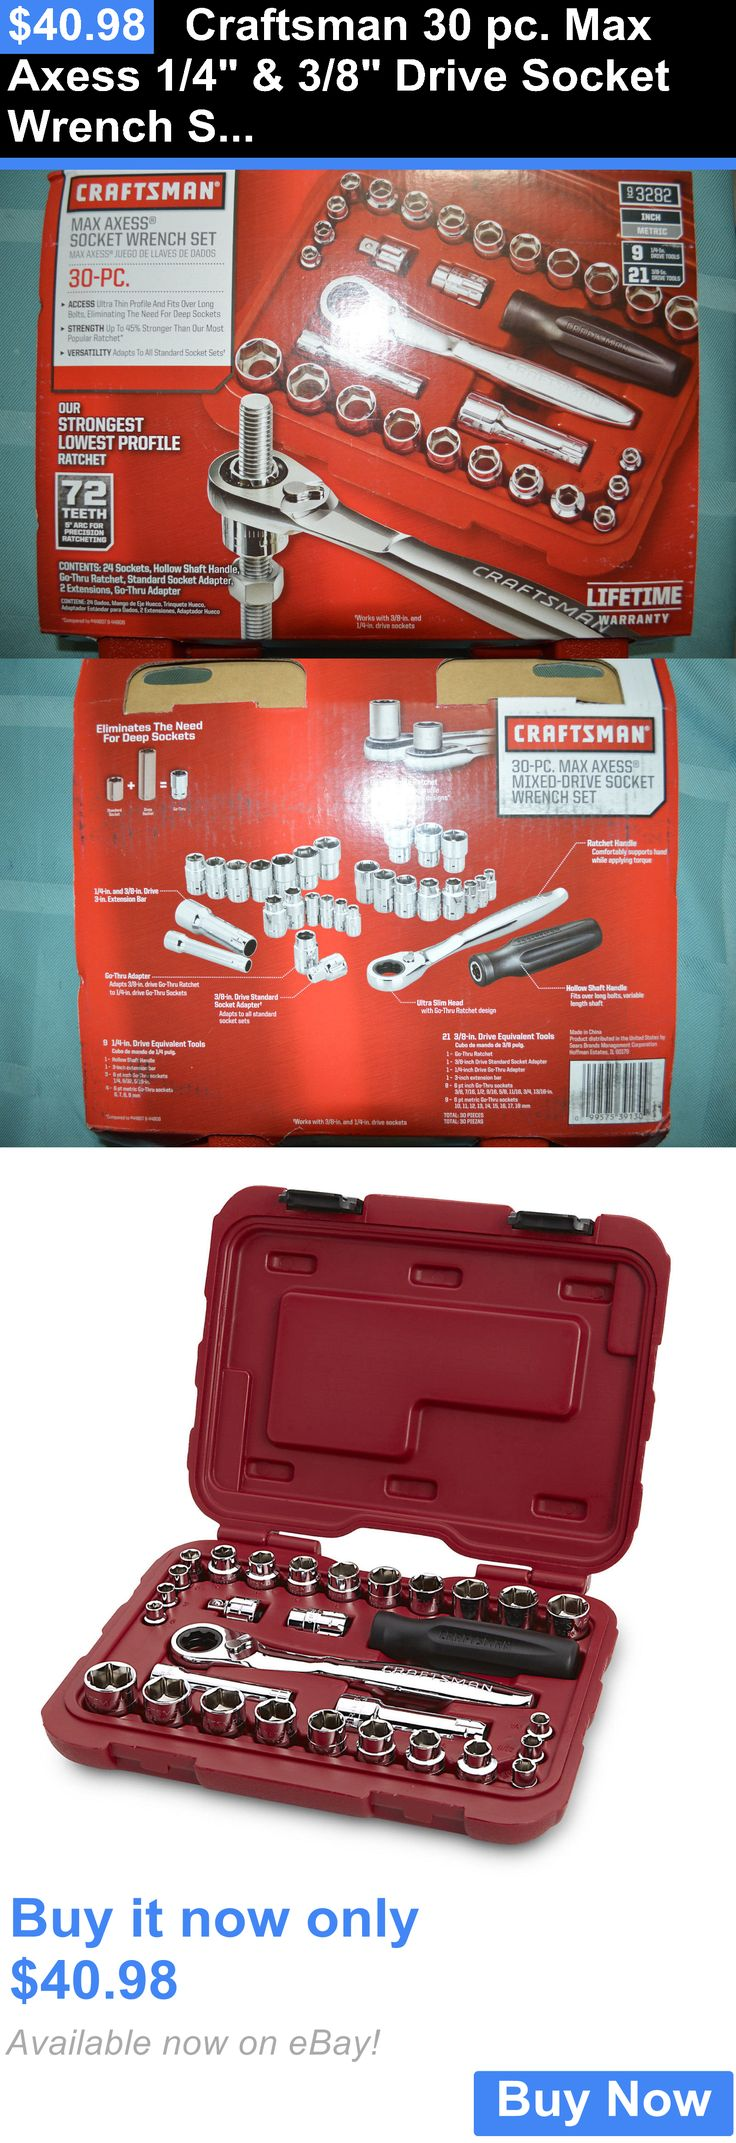 tools: Craftsman 30 Pc. Max Axess 1/4 And 3/8 Drive Socket Wrench Set